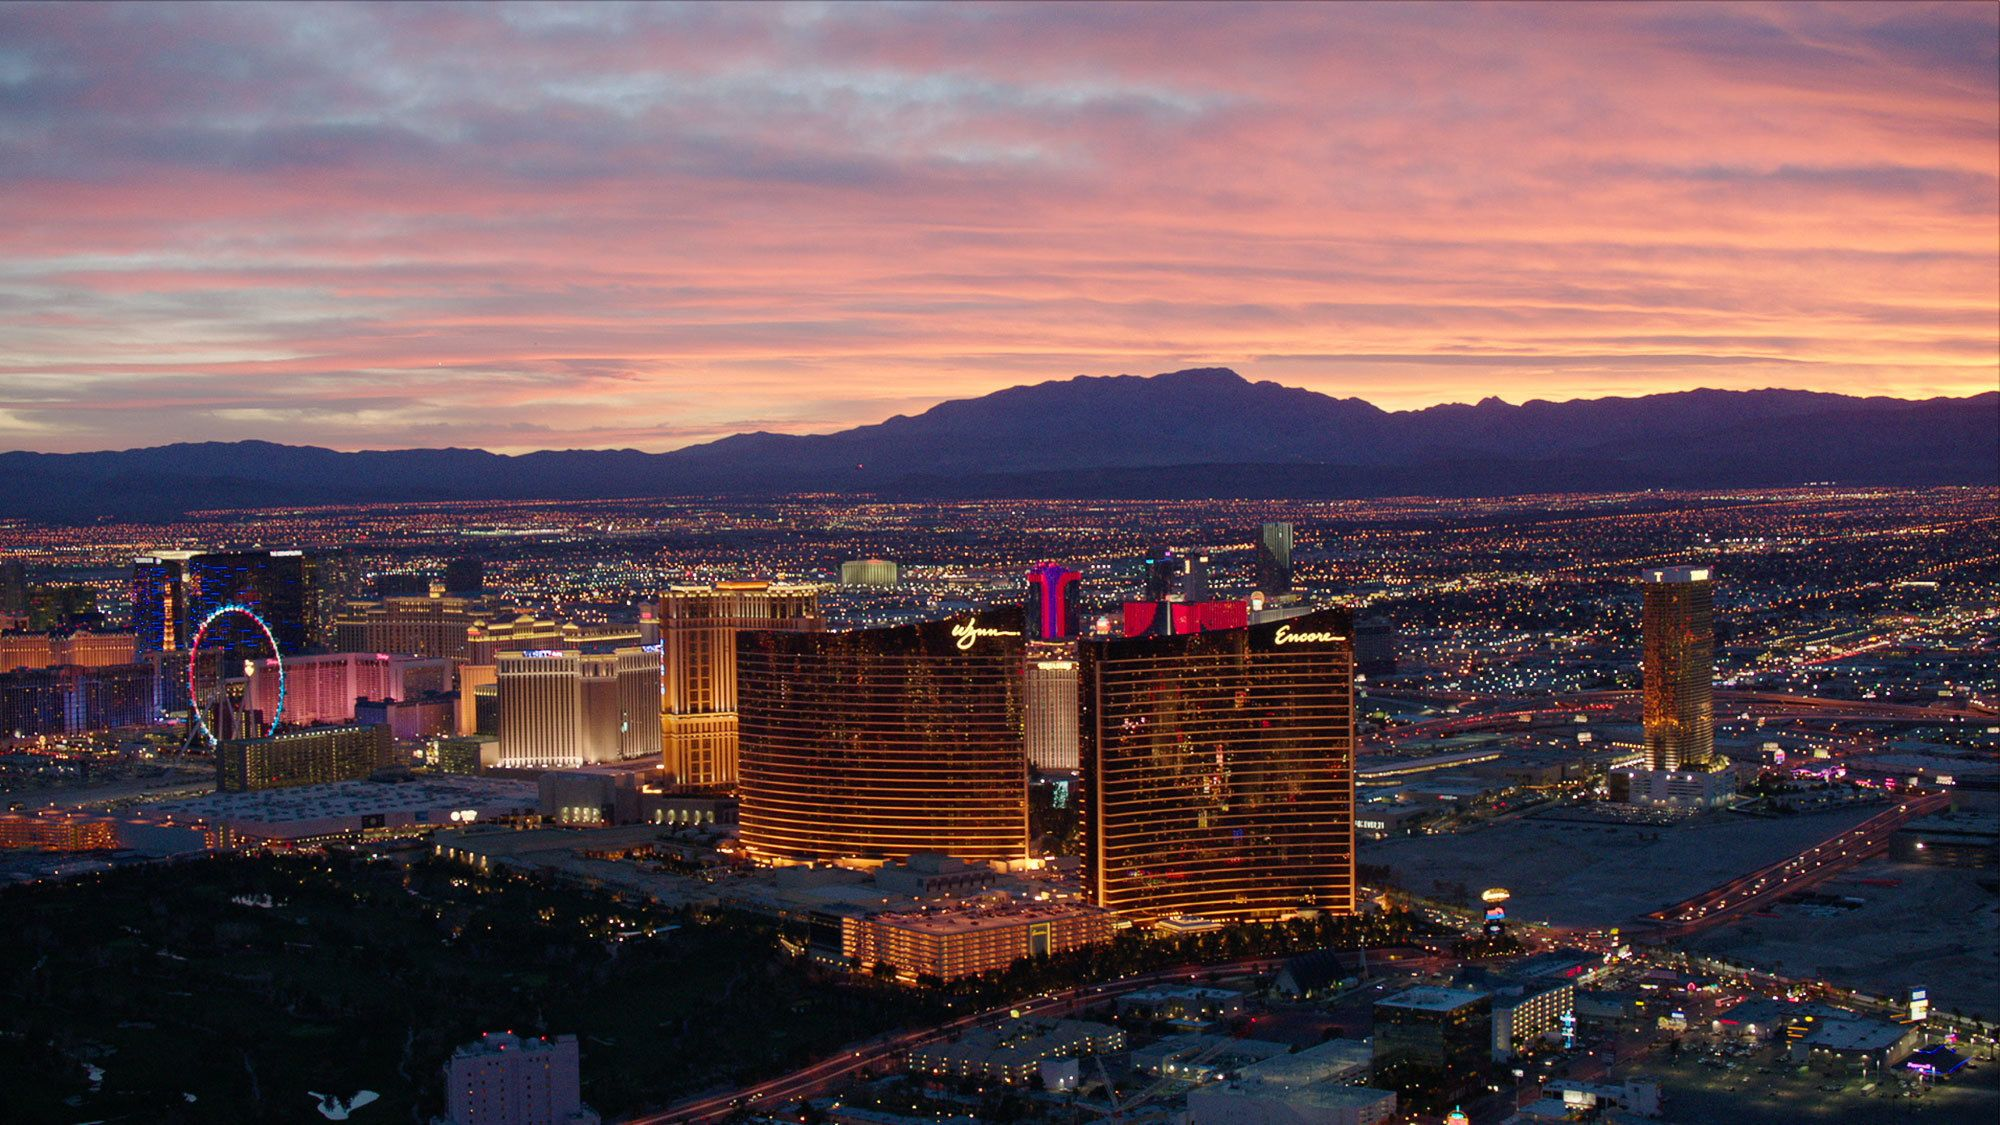 Landscape view of an evening in Las Vegas